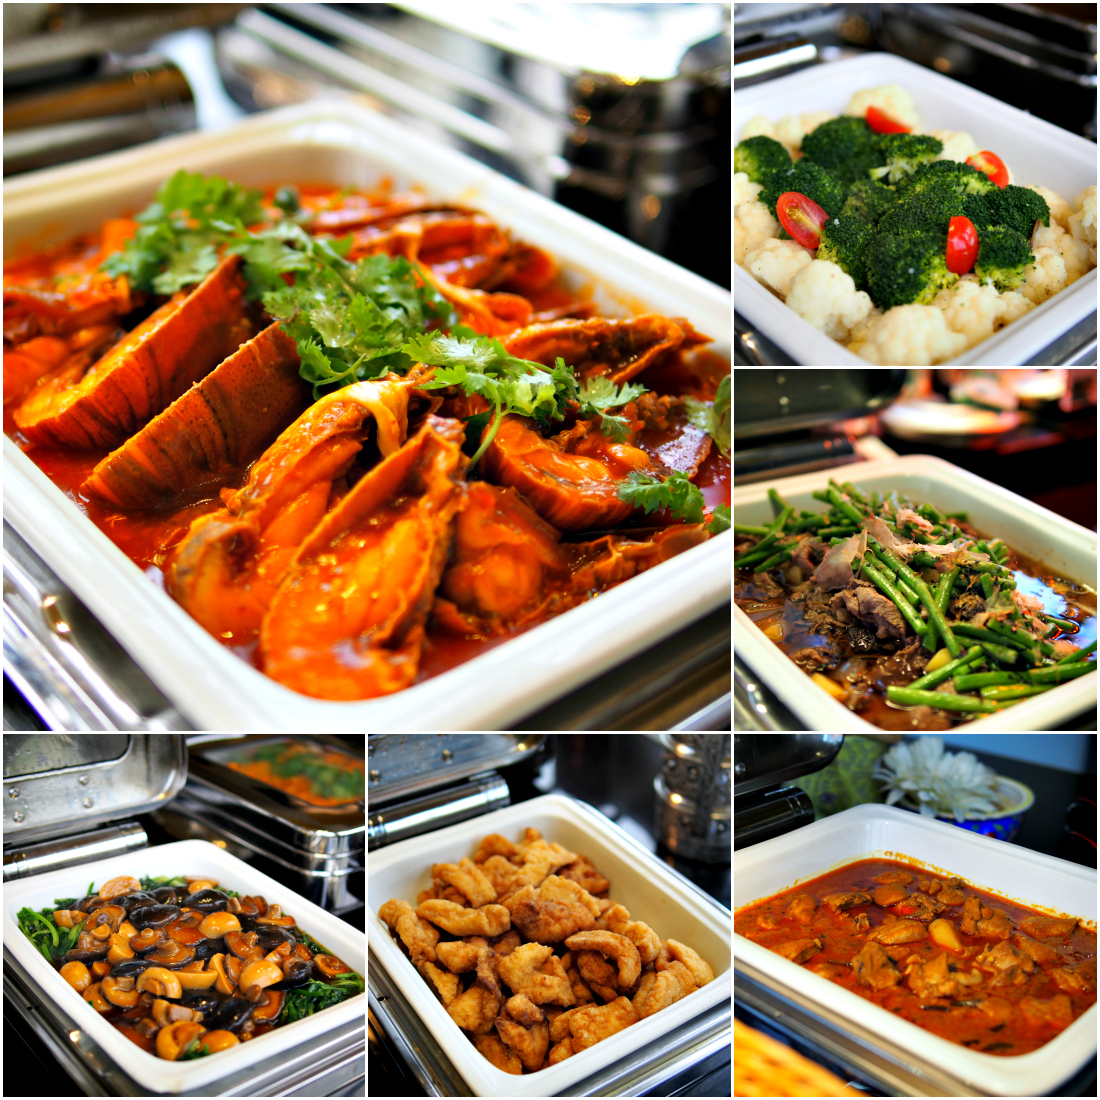 Festive Buffet at Atrium Restaurant